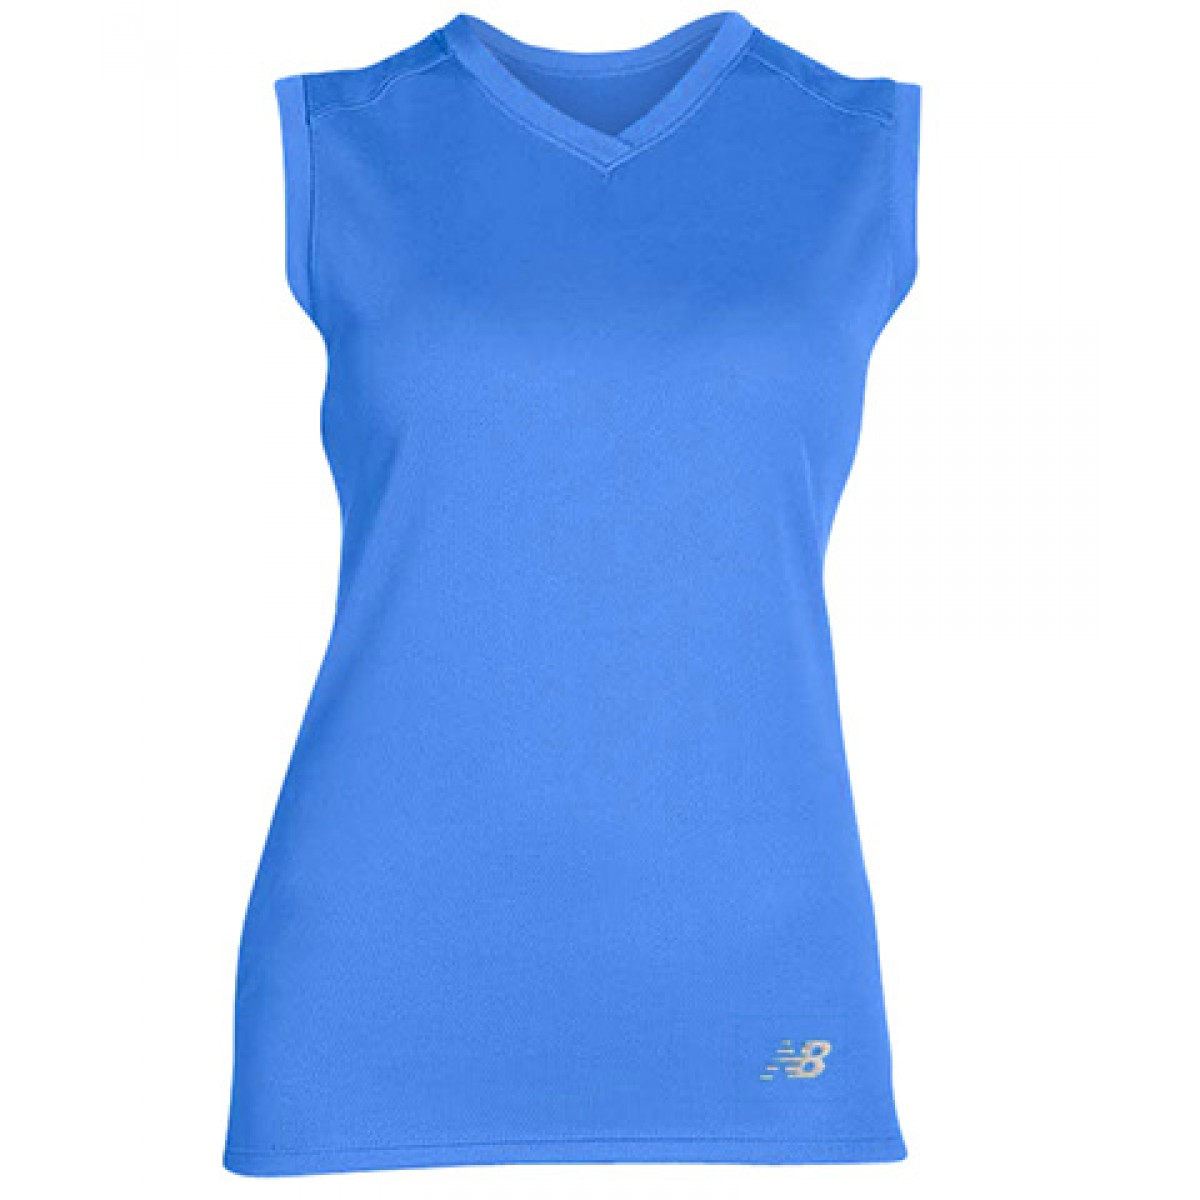 Ladies' Athletic V-Neck Performance T-Shirt-Blue-XL